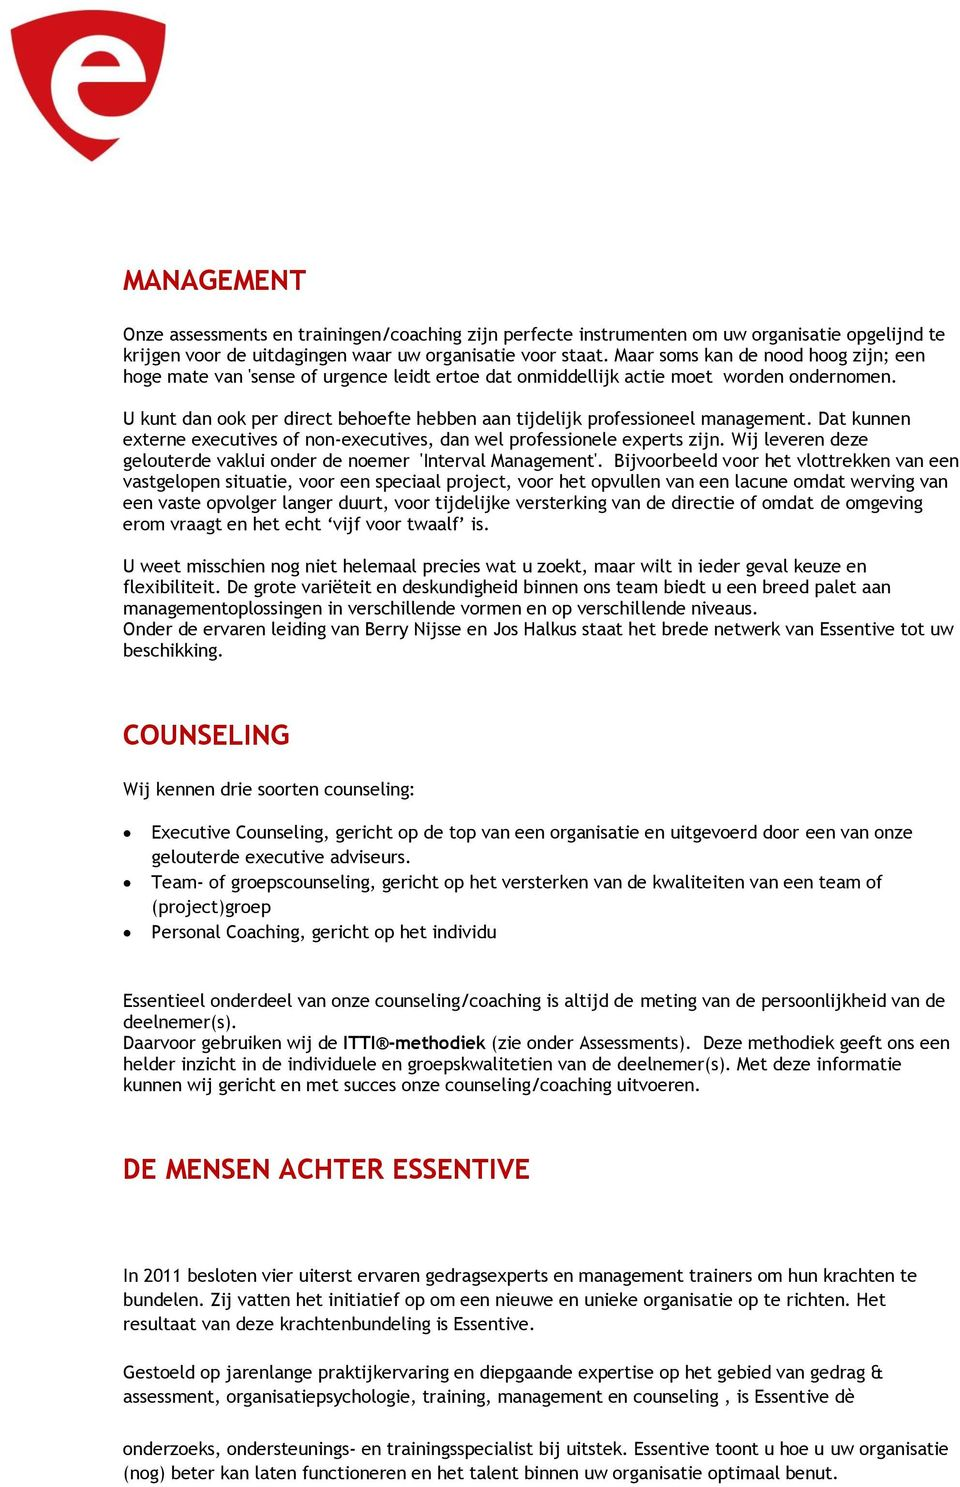 U kunt dan ook per direct behoefte hebben aan tijdelijk professioneel management. Dat kunnen externe executives of non-executives, dan wel professionele experts zijn.